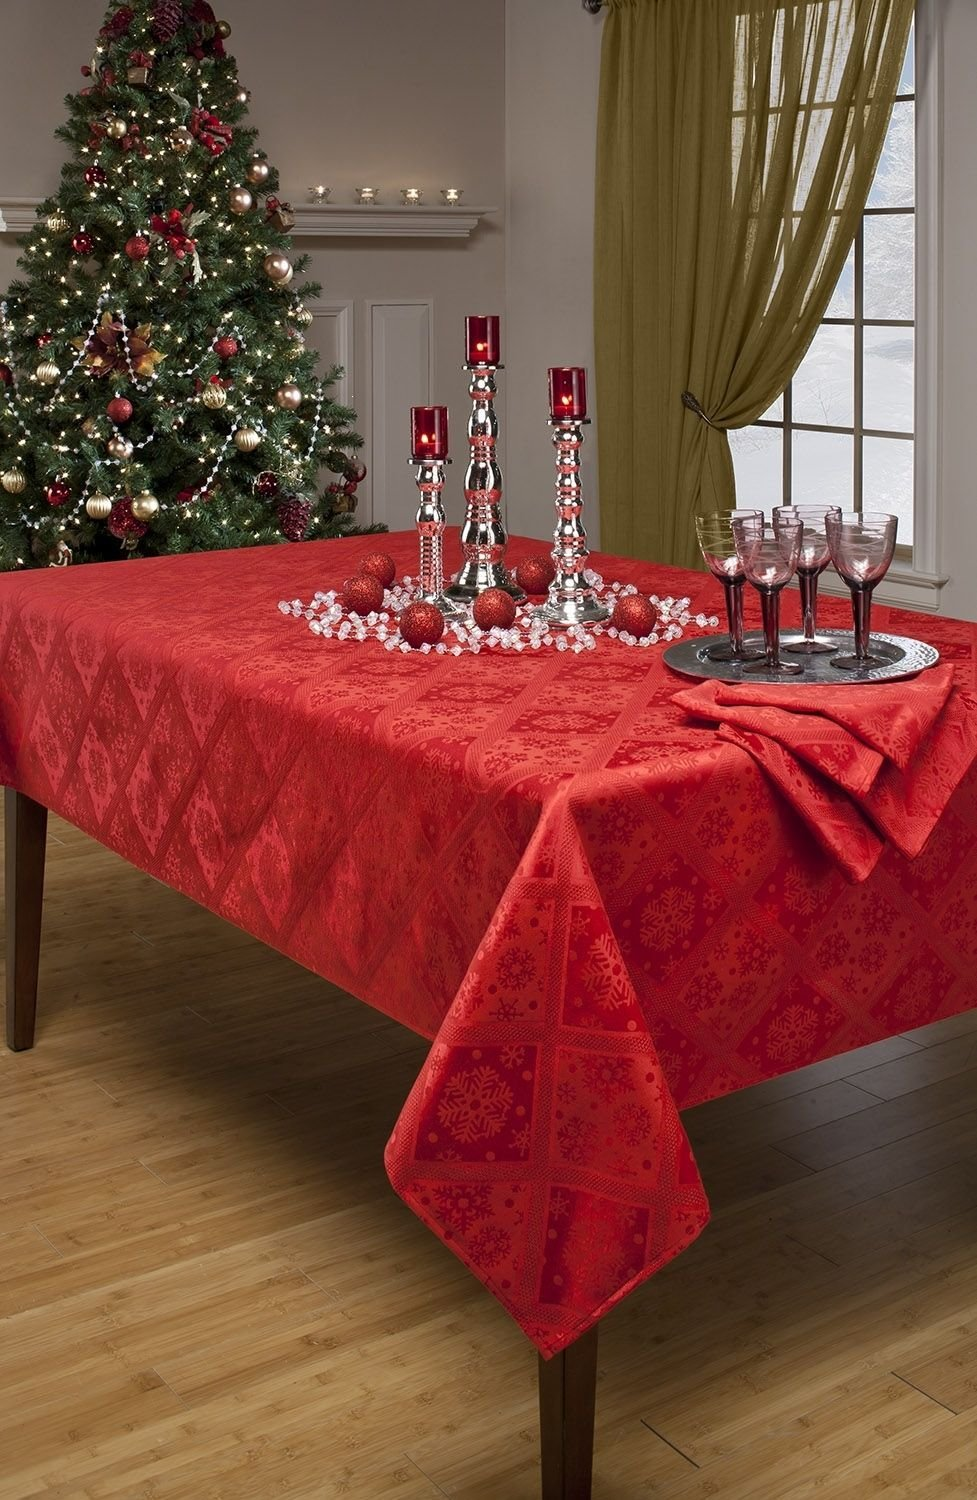 Image result for red brocade tablecloth